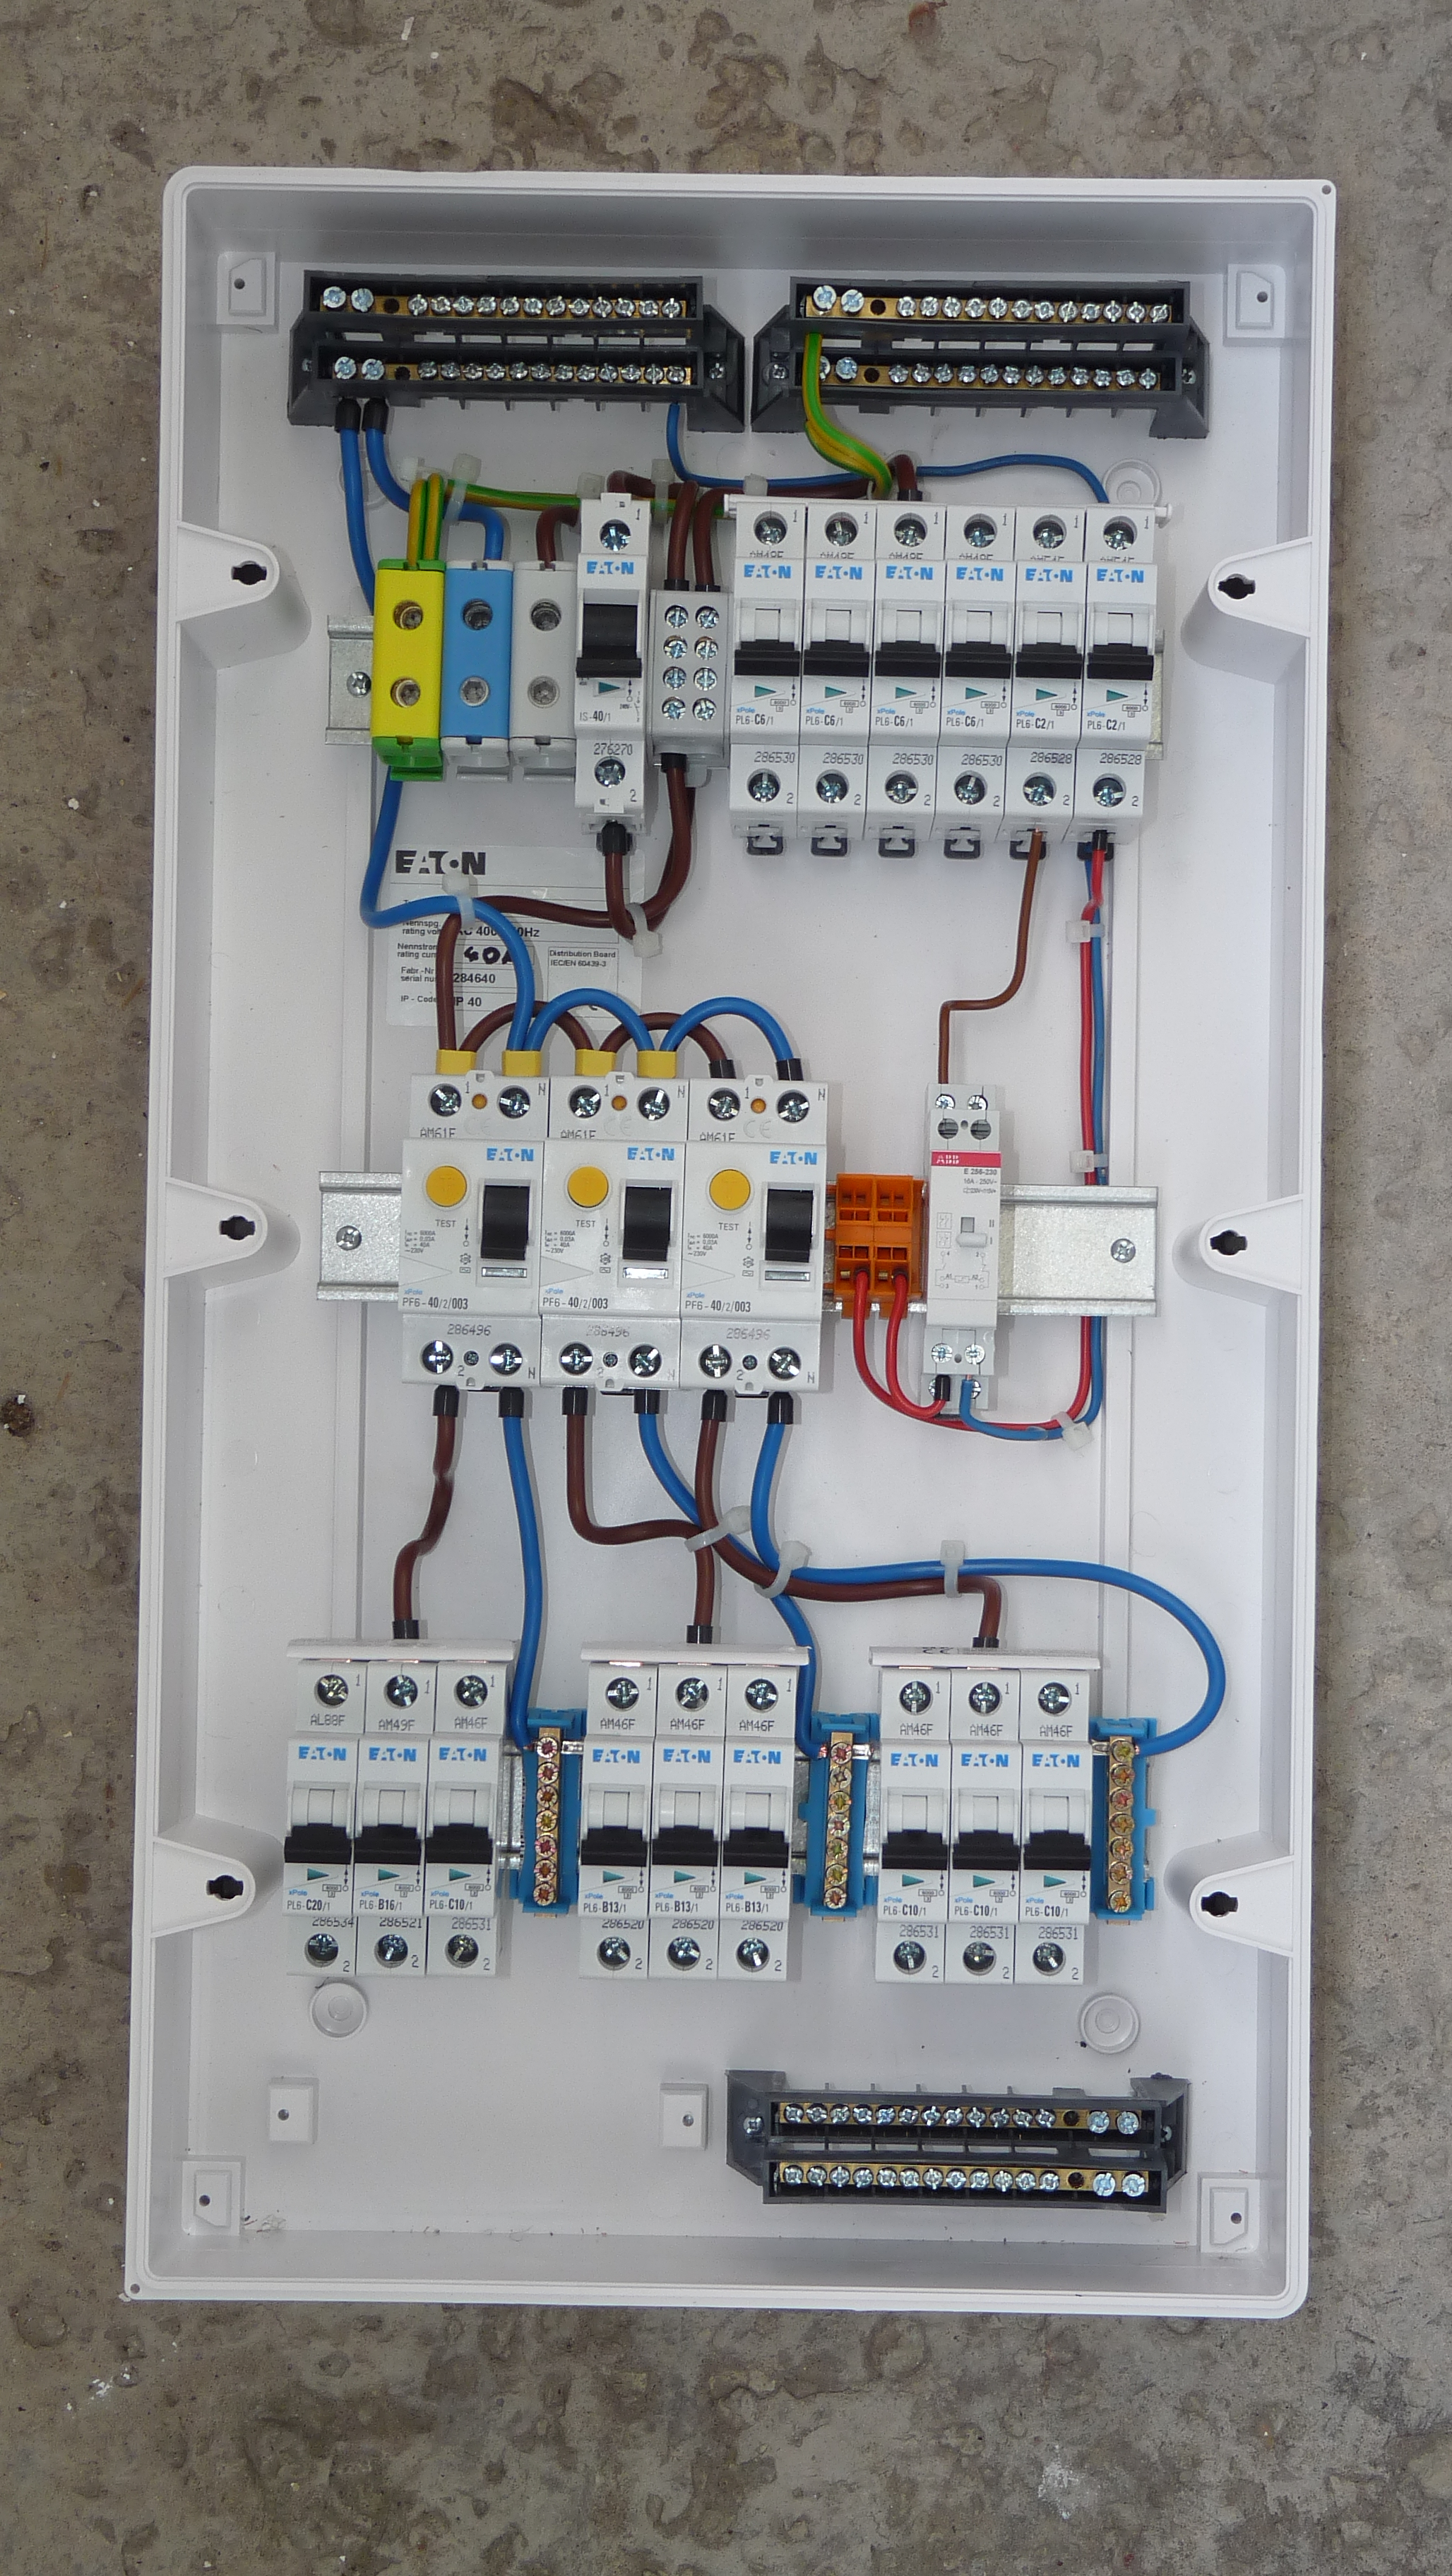 Smart Fuse Box Wiki Wiring Schematic 2019 Mazda 3 Sp23 File Paekaare 24 Wikimedia Commons Rh Org